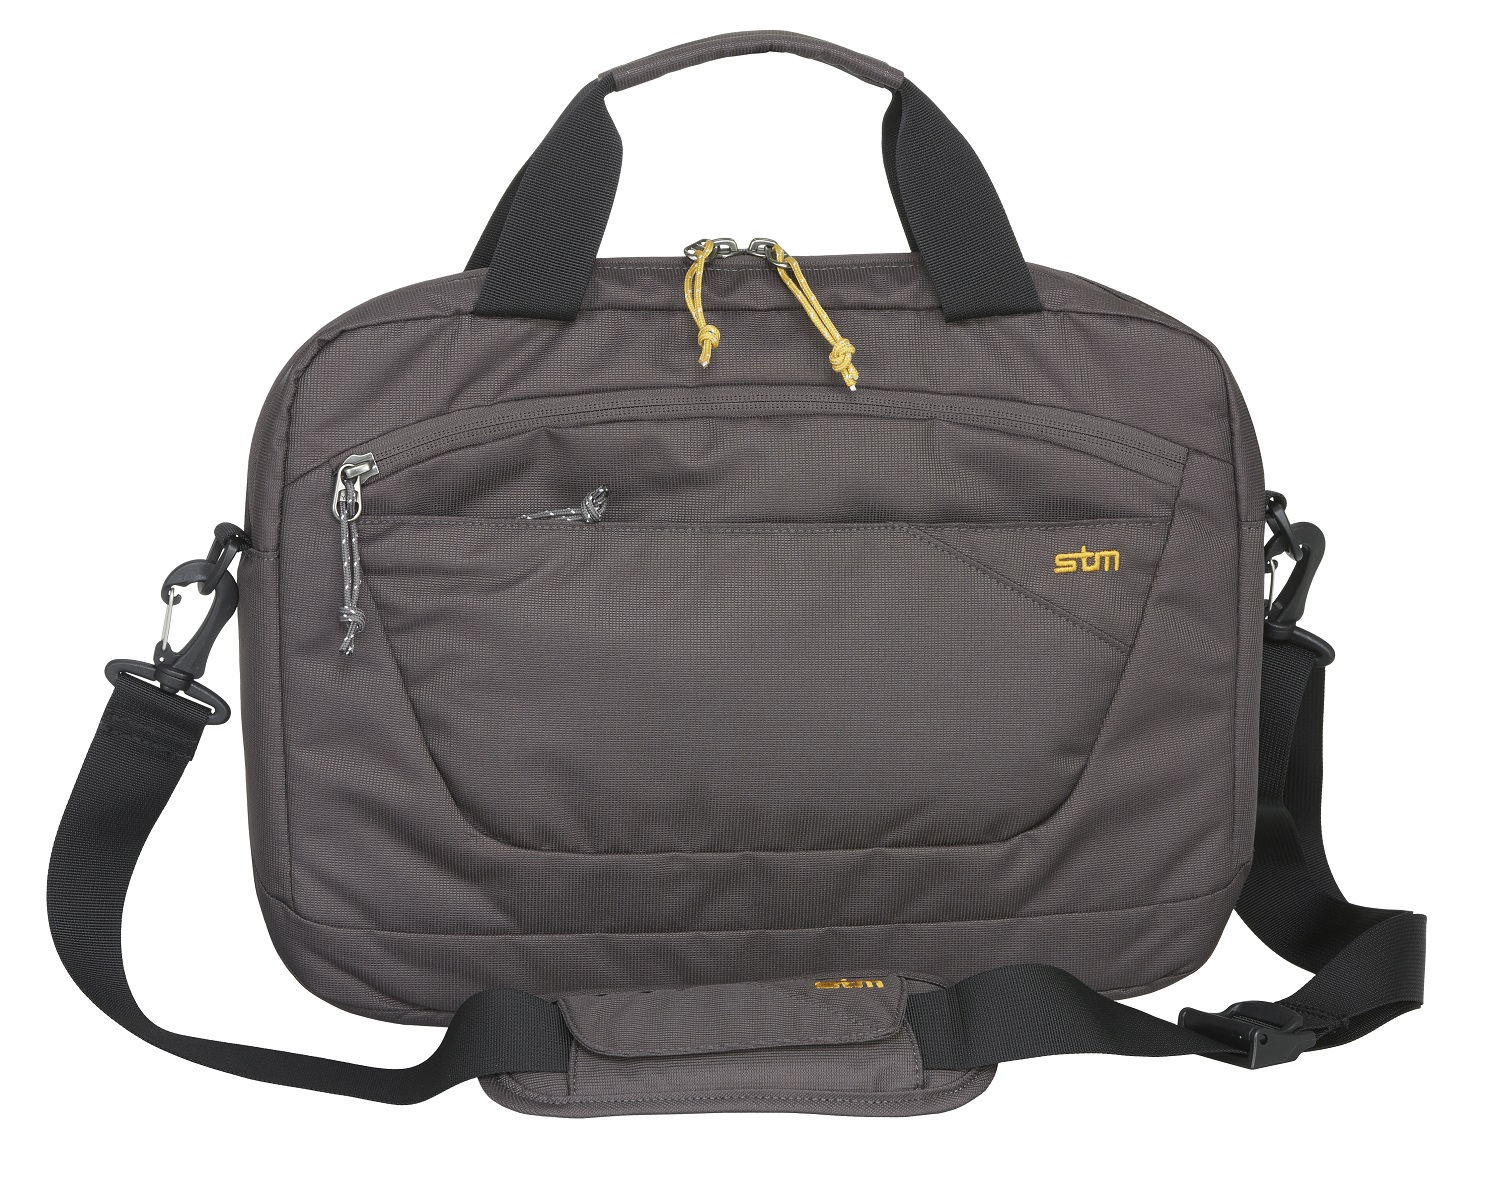 STM Swift Sling Bag 13 inch